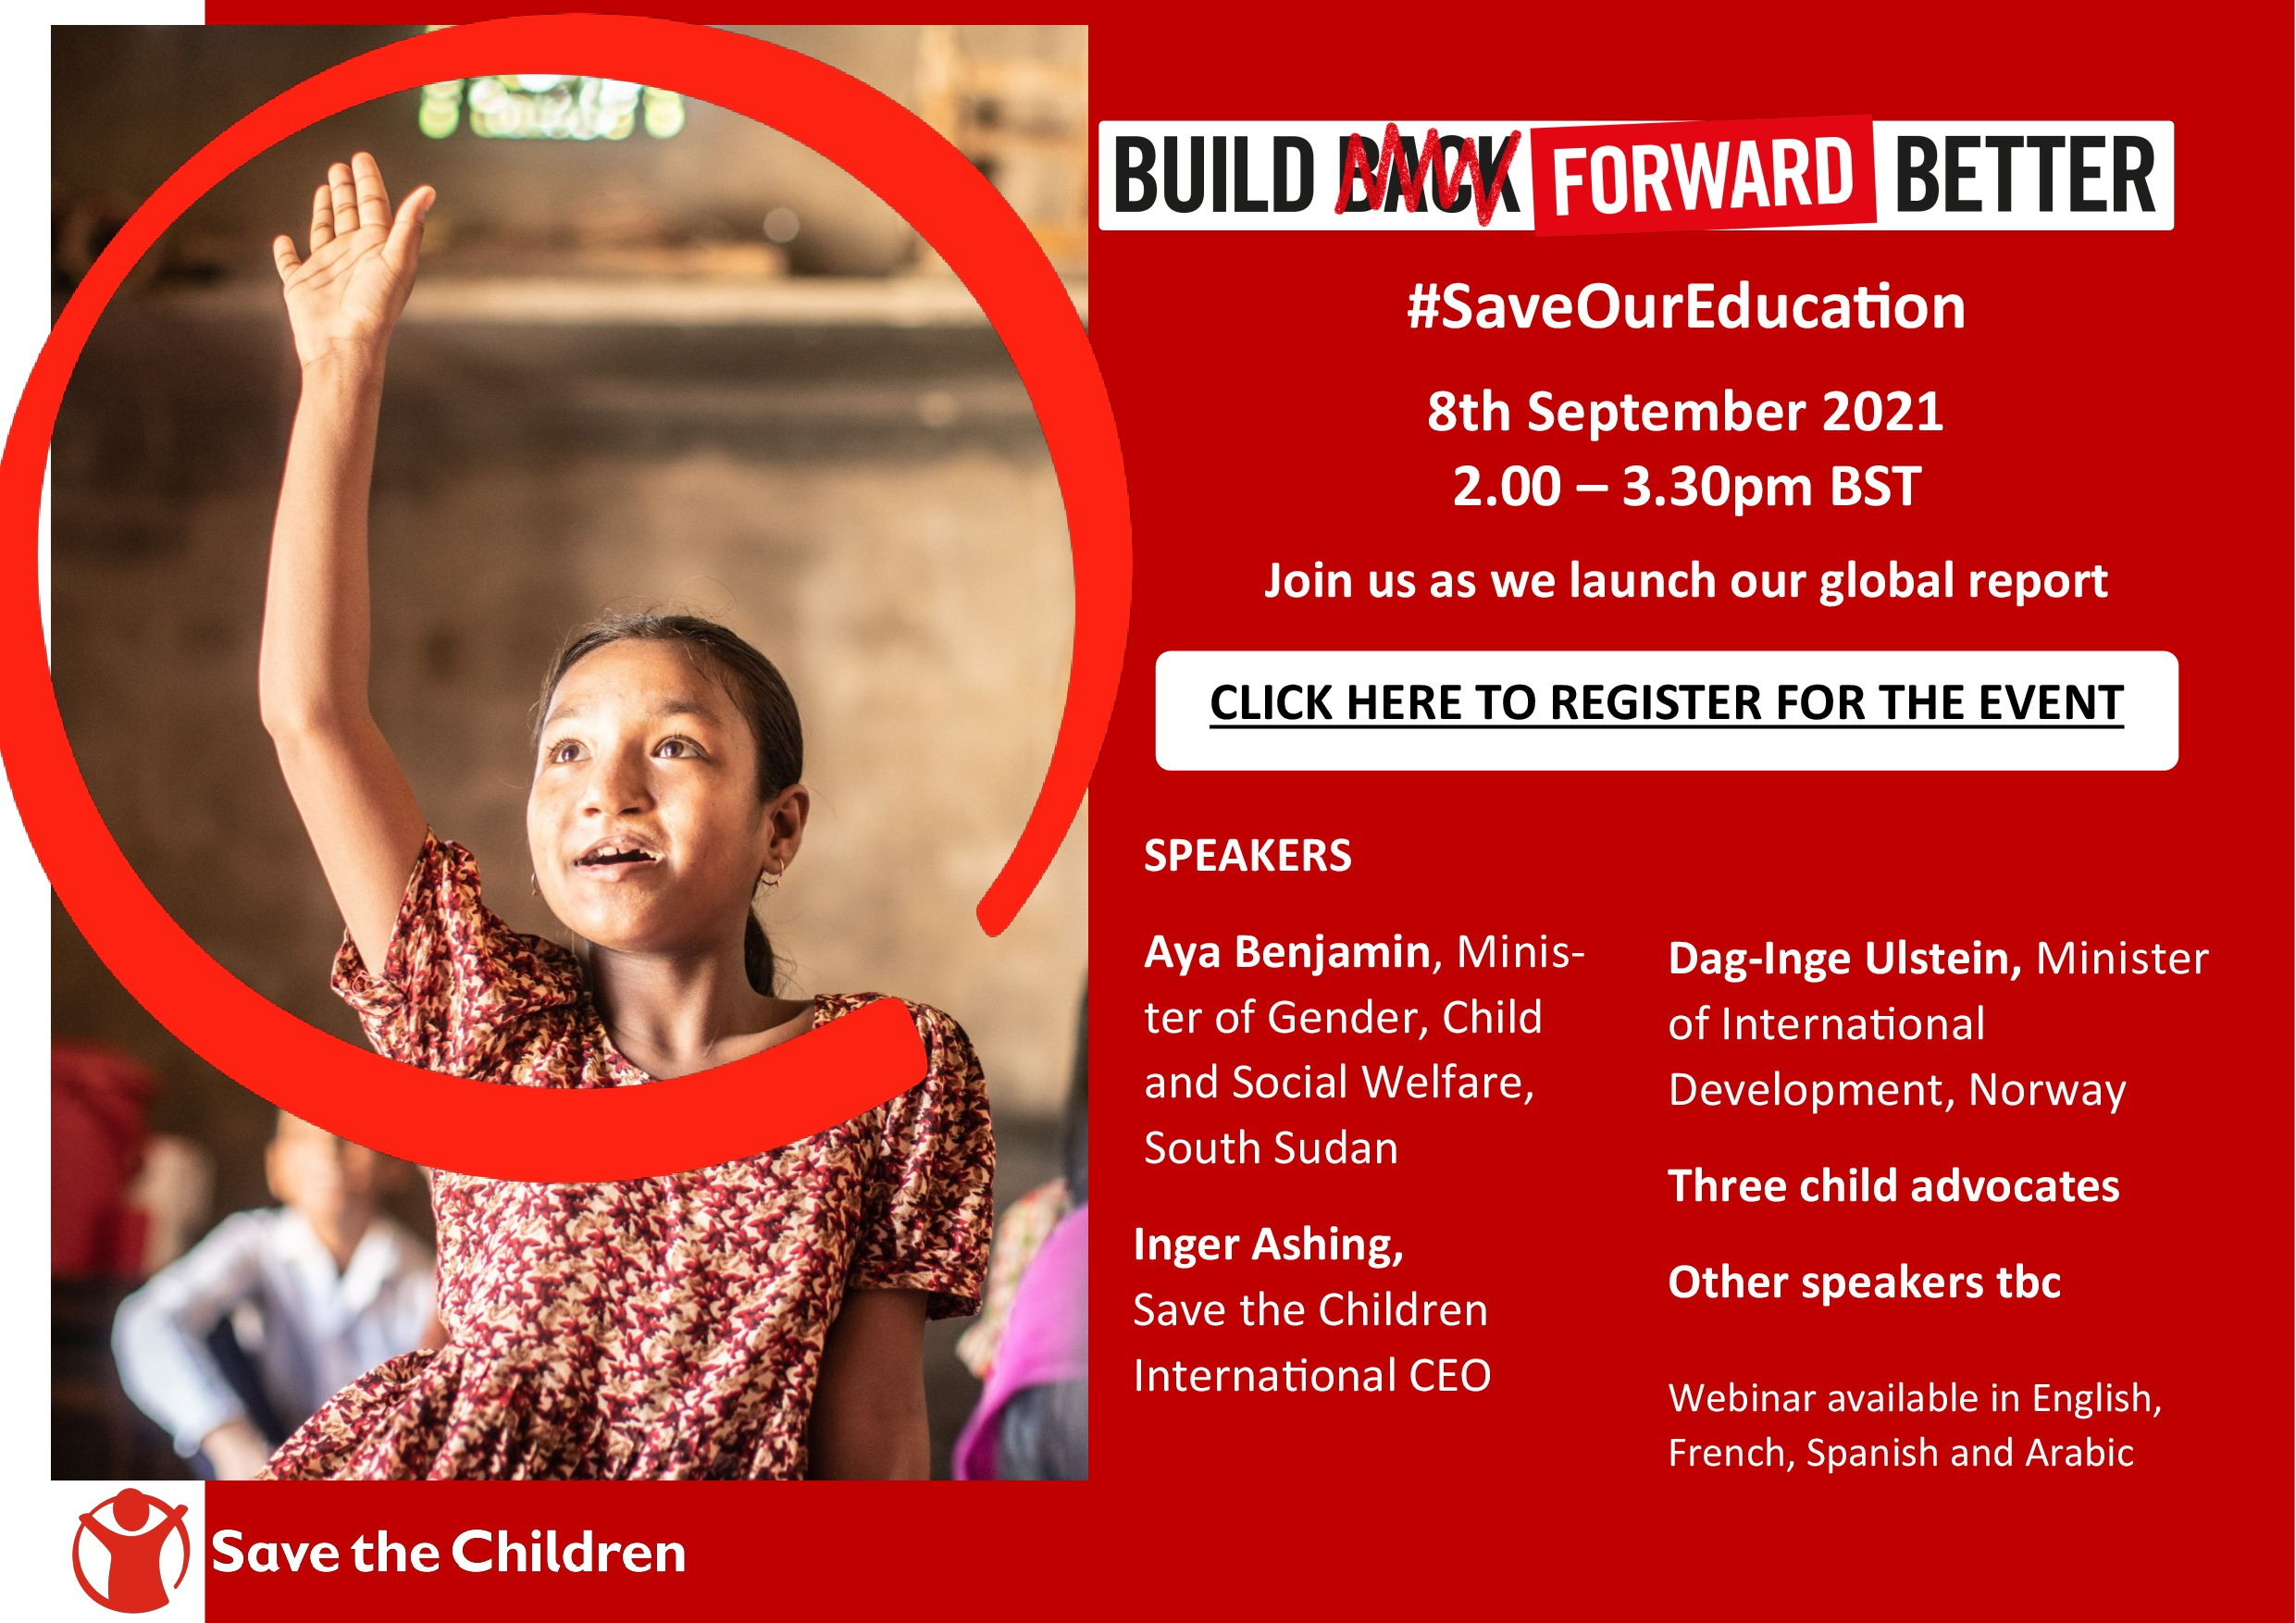 Build Forward Better to Save our Education